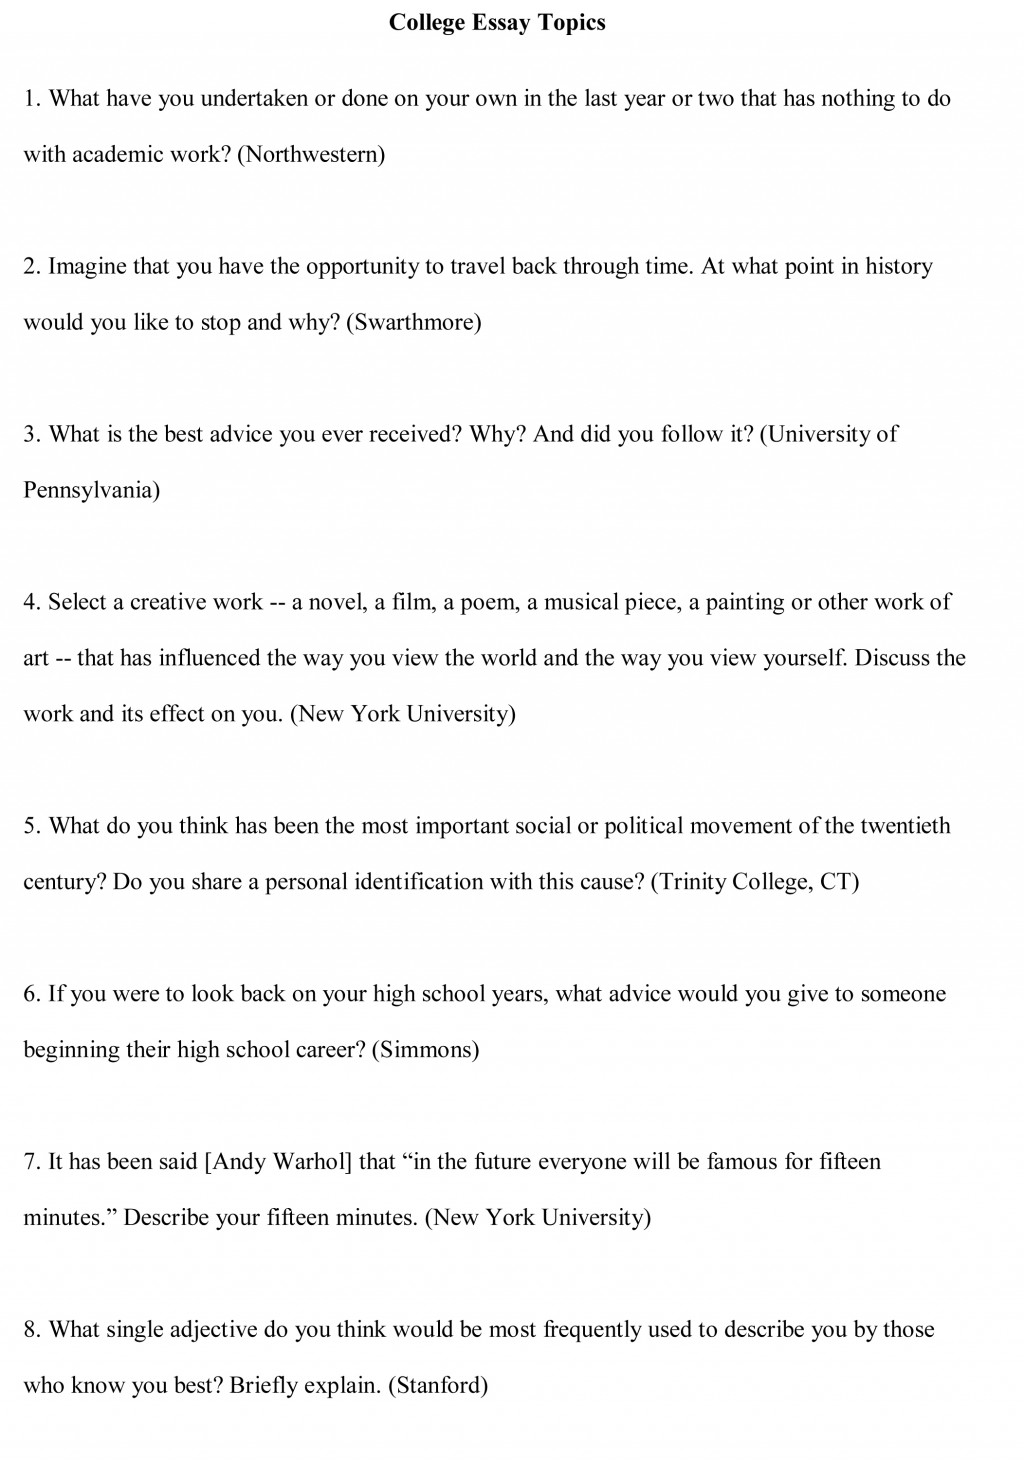 002 College Essay Topics Free Sample1cbu003d Top A B And C Argumentative Common To Avoid Large